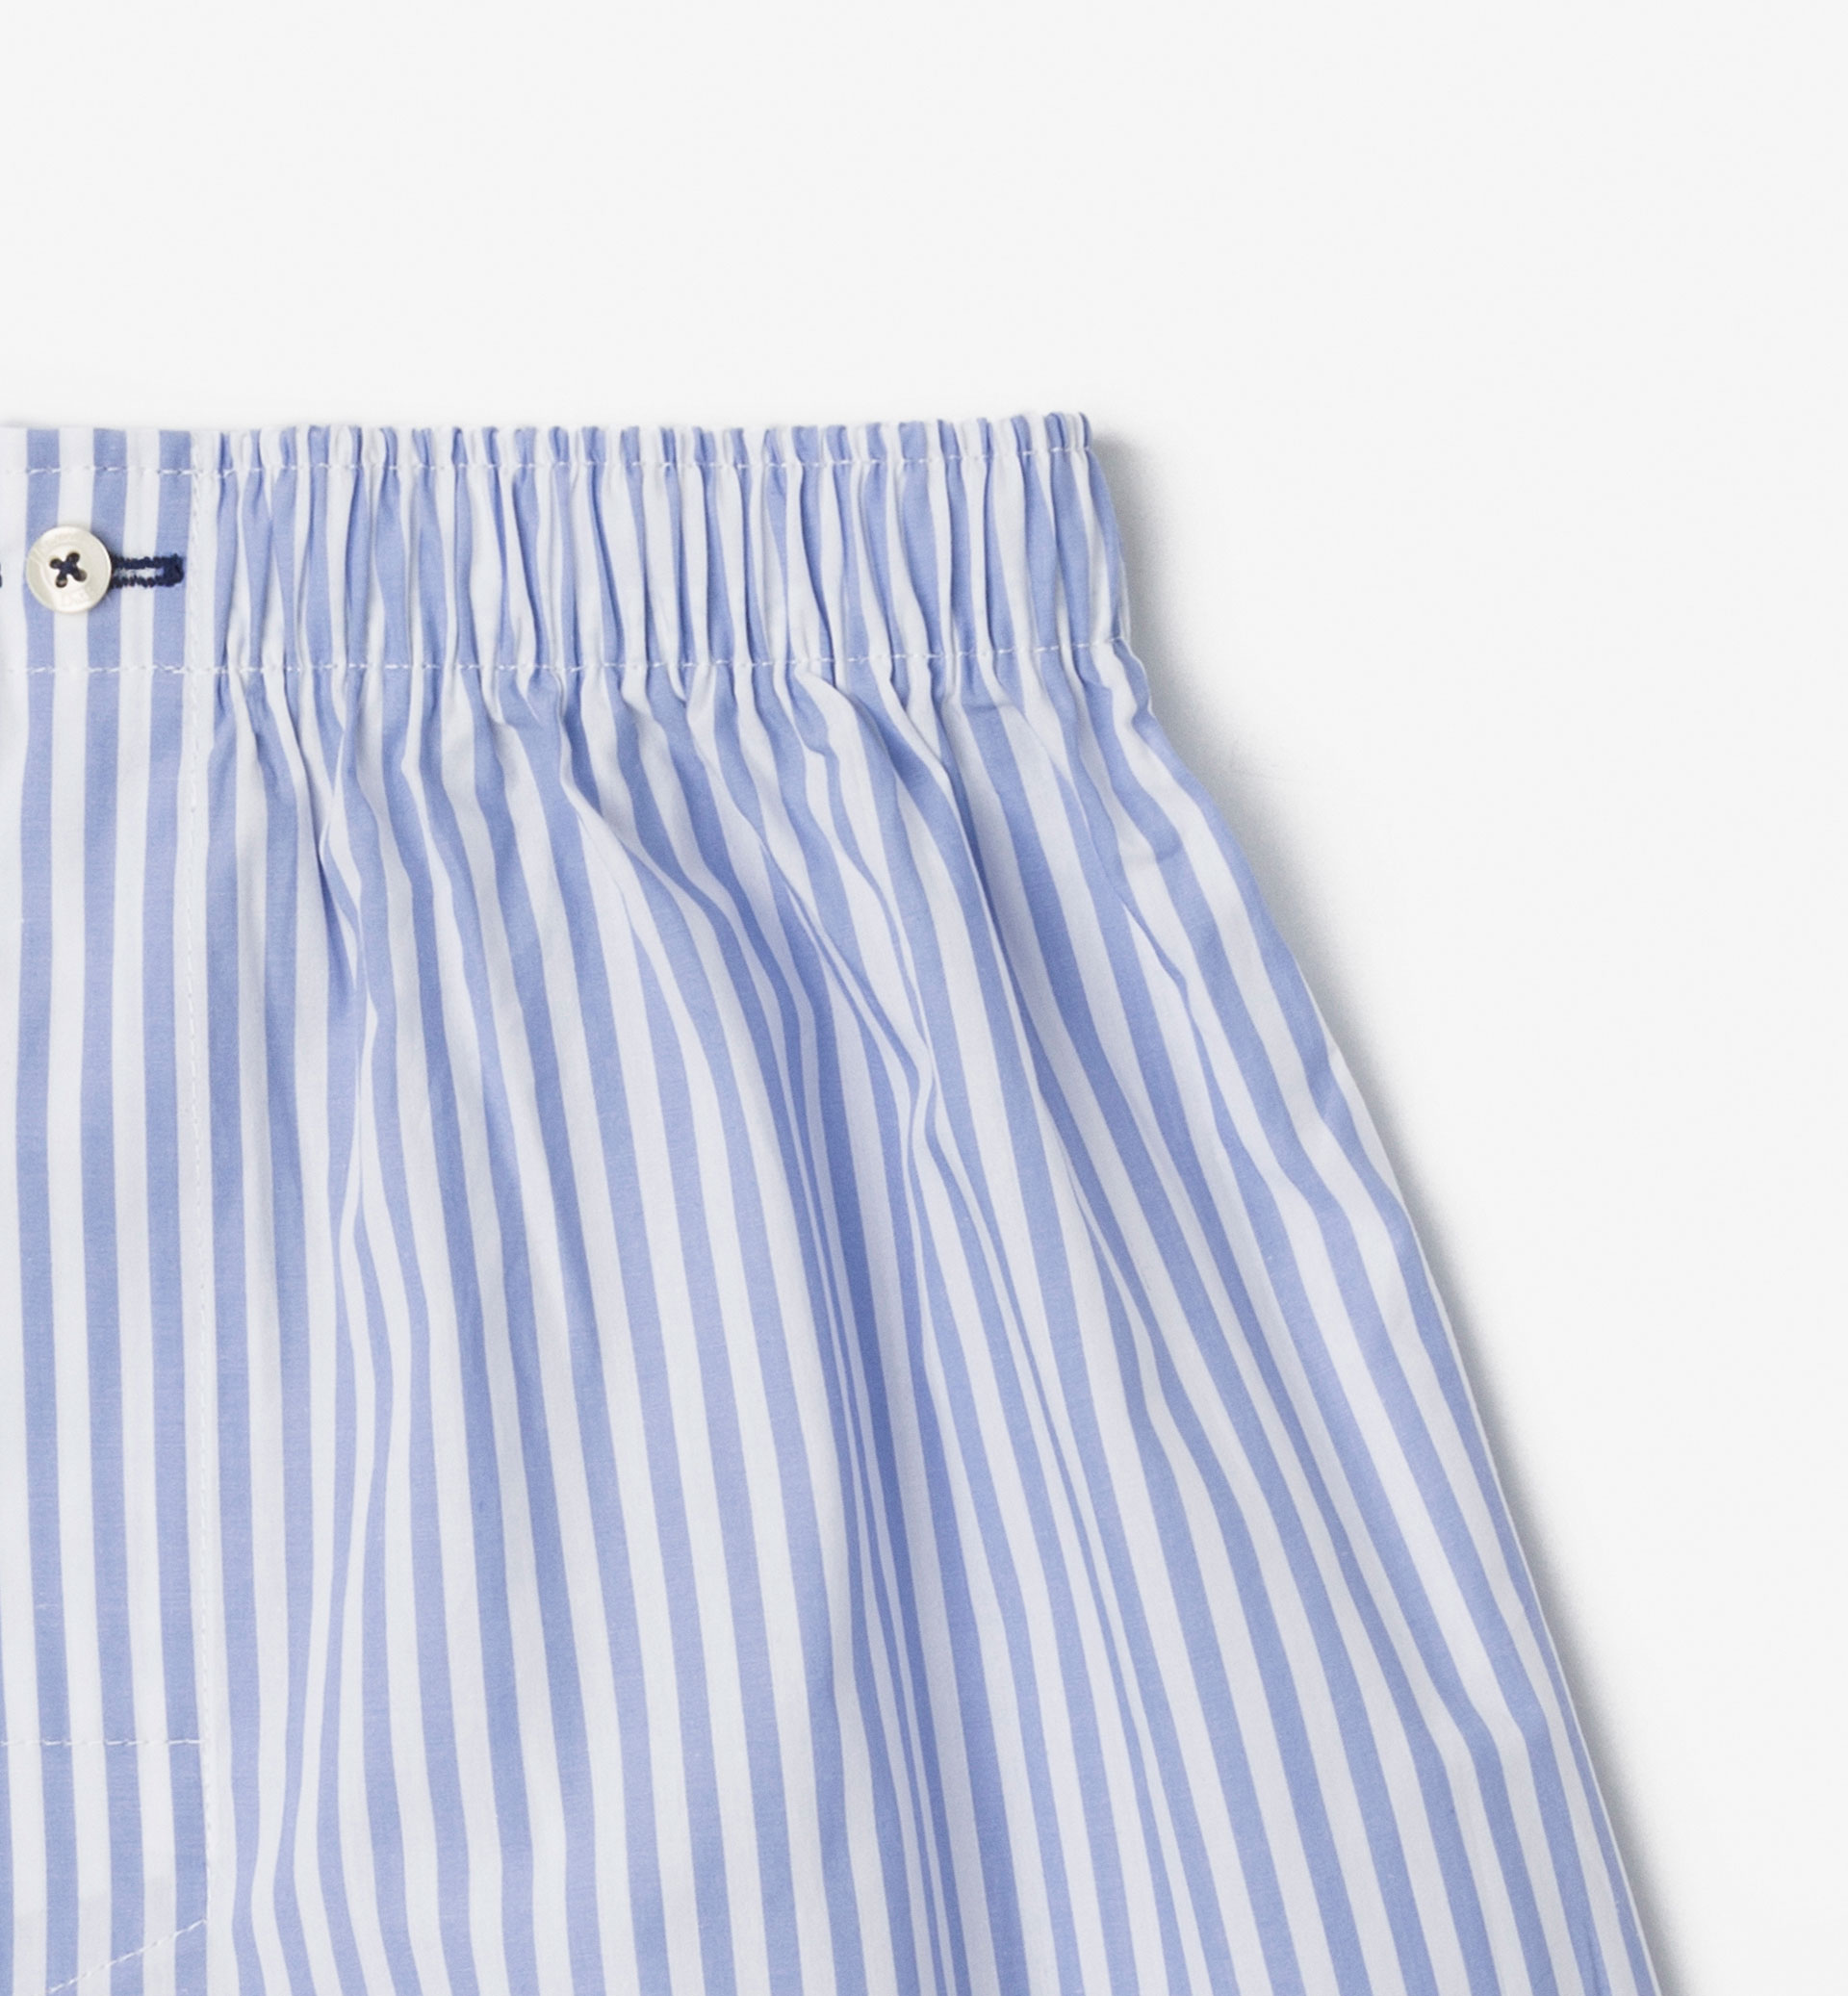 BLUE STRIPED UNDERPANTS